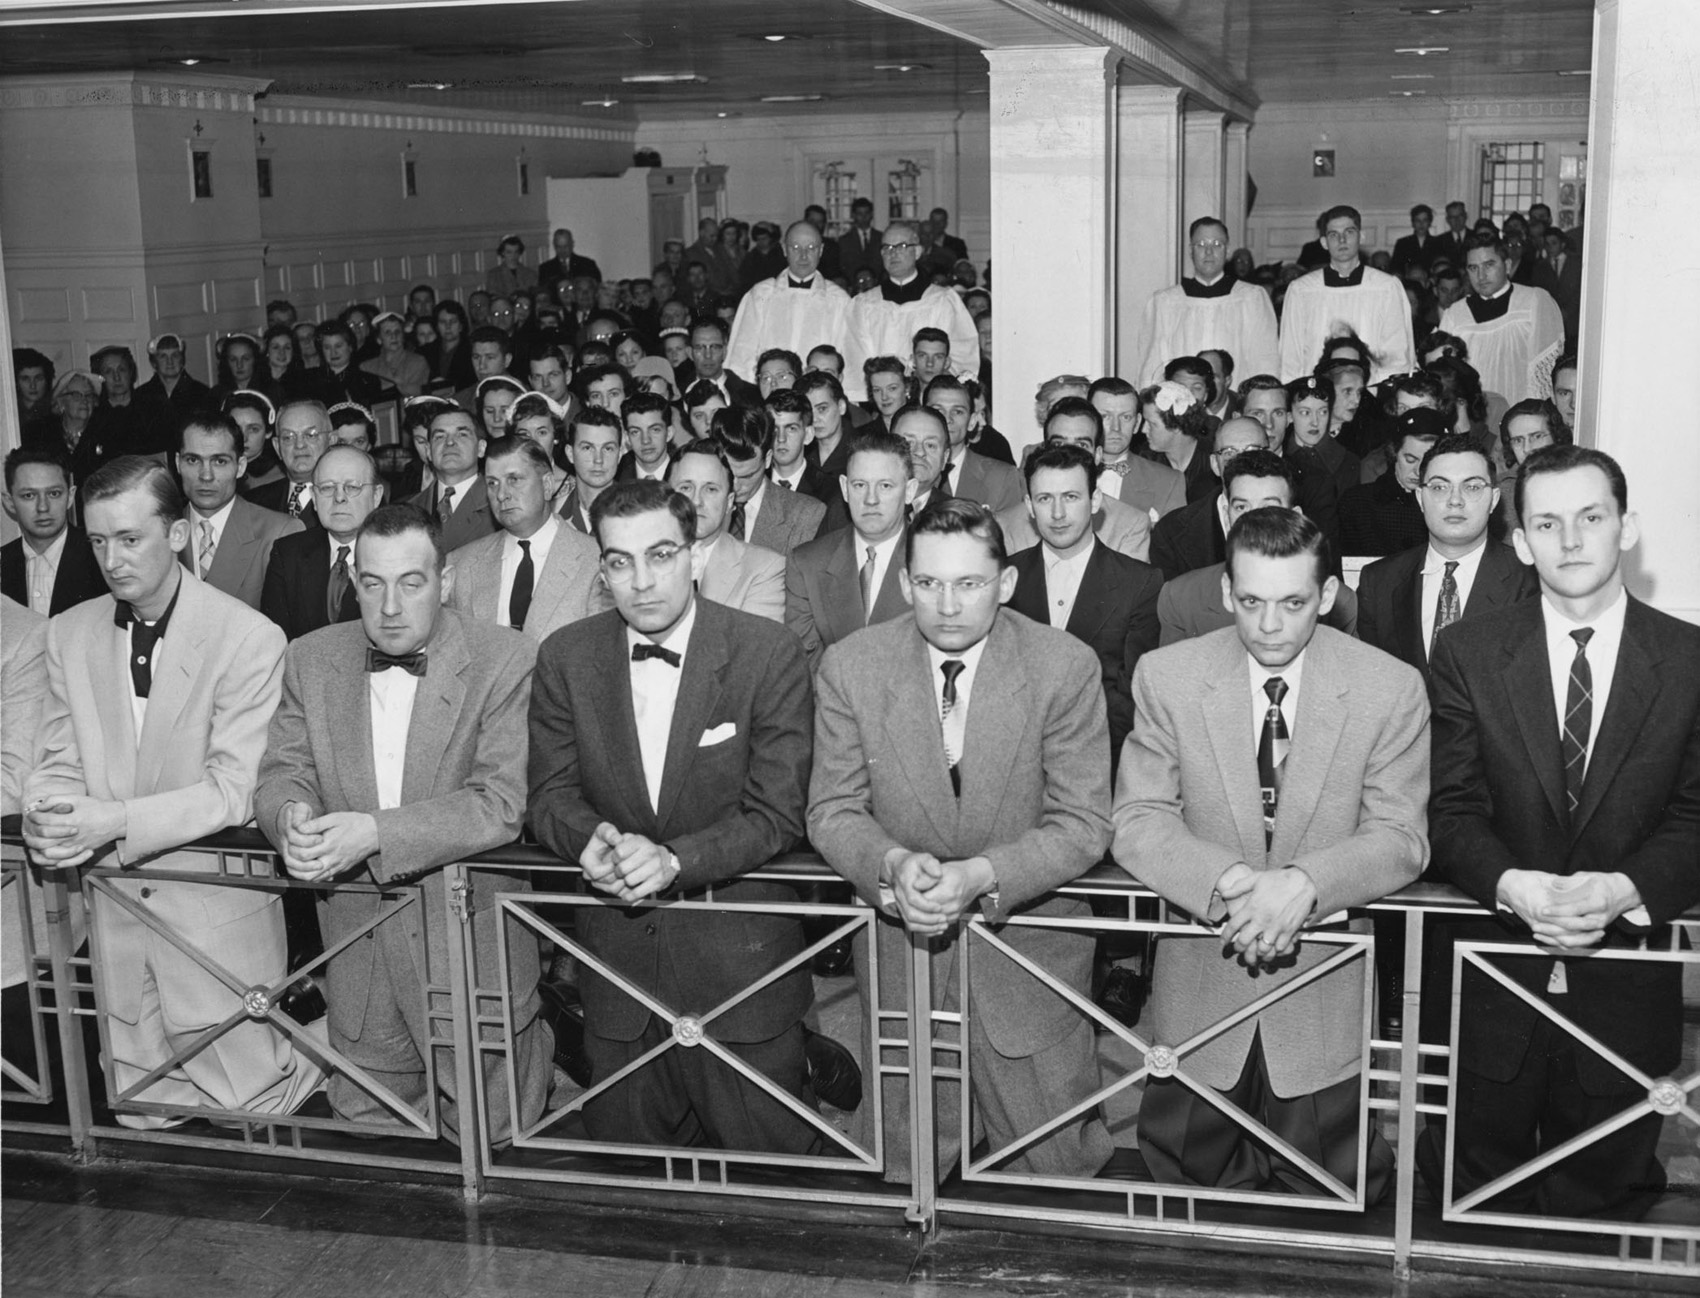 Before the liturgical changes of the Second Vatican Council, Catholics received the Eucharist by approaching and kneeling at the Communion rail. This photo was taken during Mass at the Paulist Center in Boston in 1955. (CNS photo from The Pilot) (Oct. 17, 2005) See VATICANII-OVERVIEW Oct. 12, 2005. (b/w only)